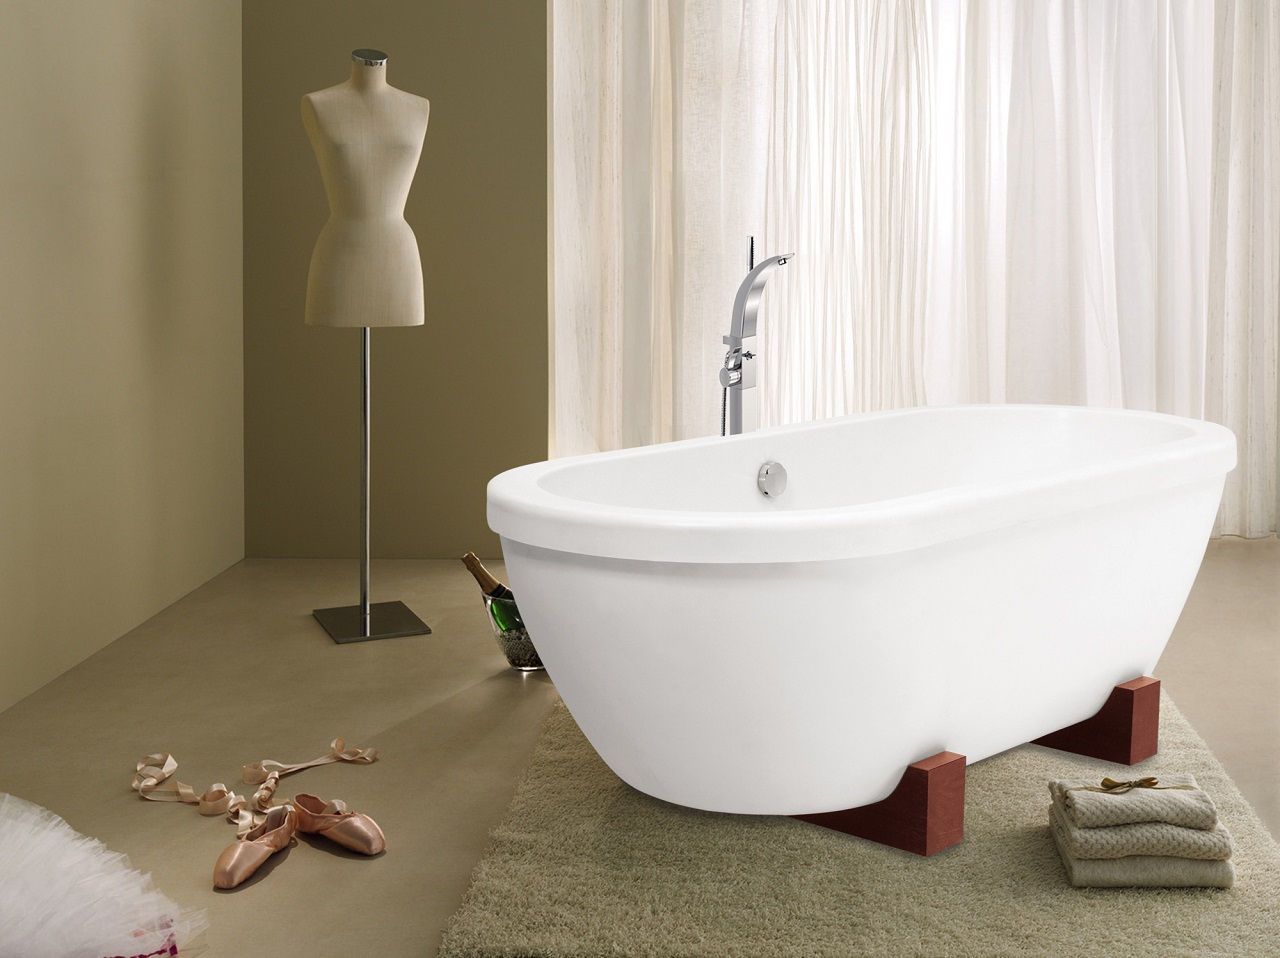 AdoreMe Wht Freestanding Light Weight Stone​ Bathtub by Aquatica web 1